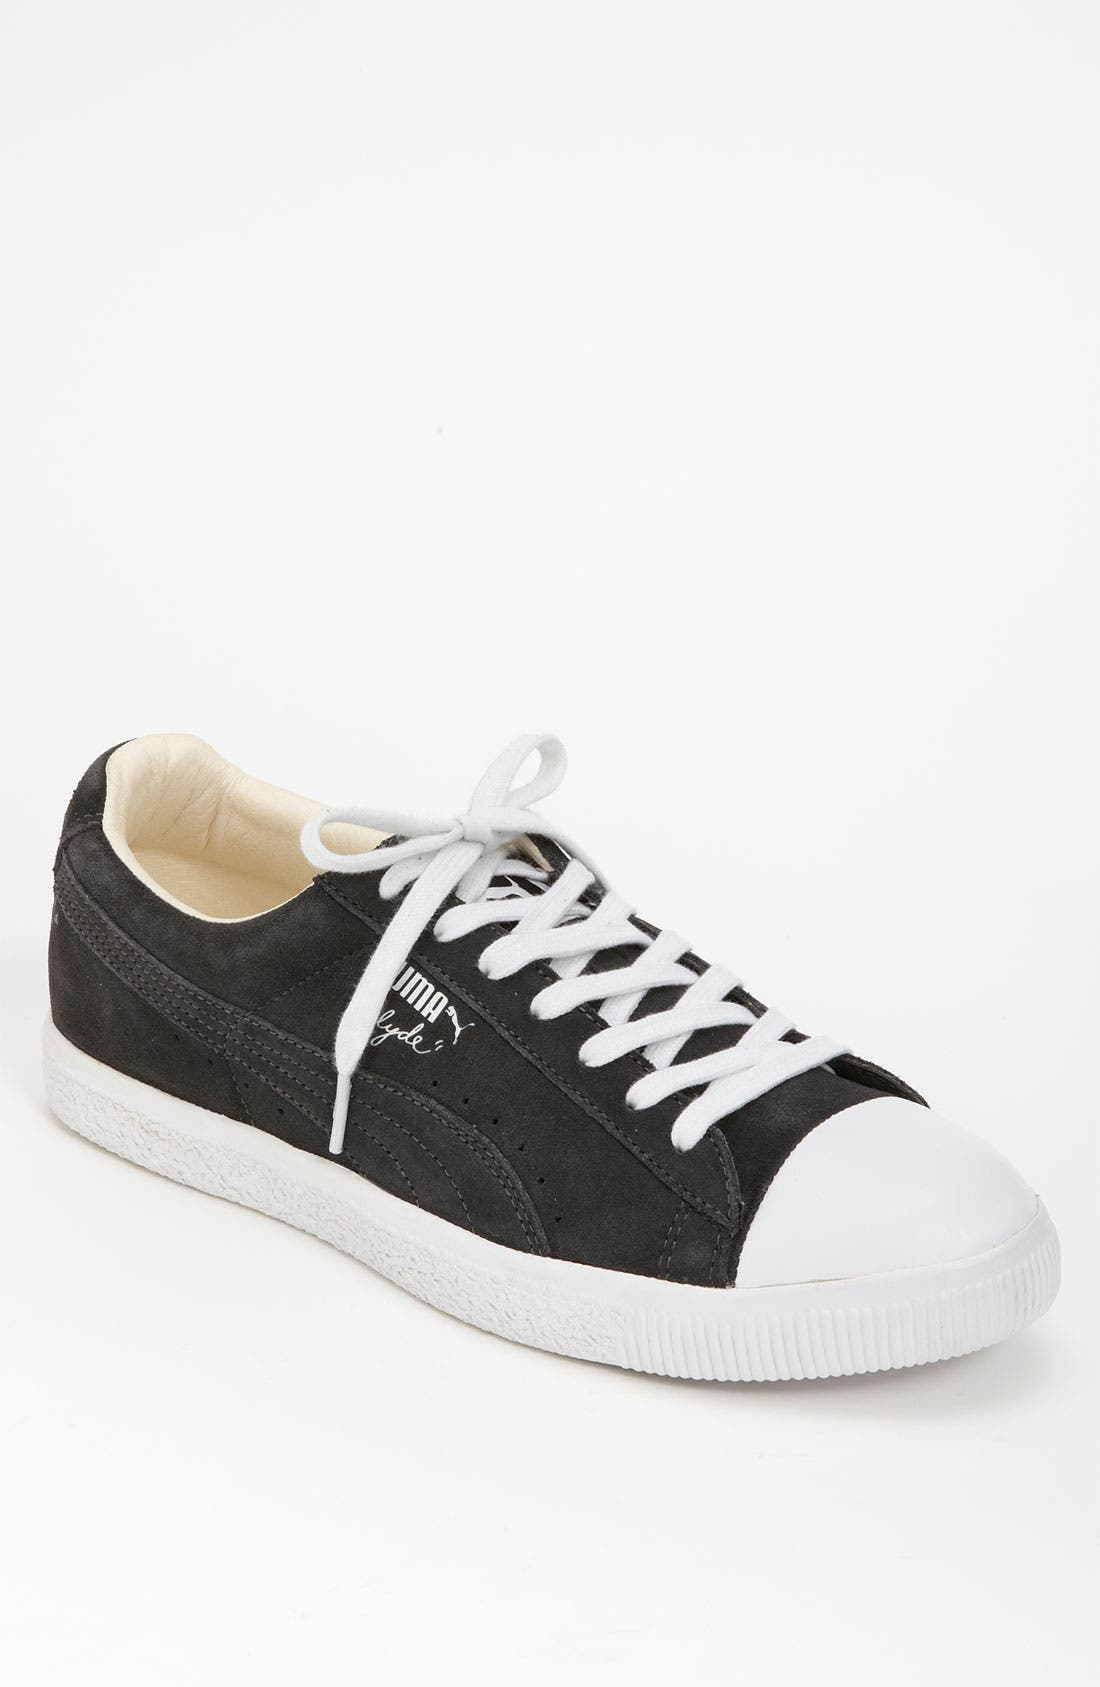 Alternate Image 1 Selected - PUMA 'Clyde Script TC' Sneaker (Men)